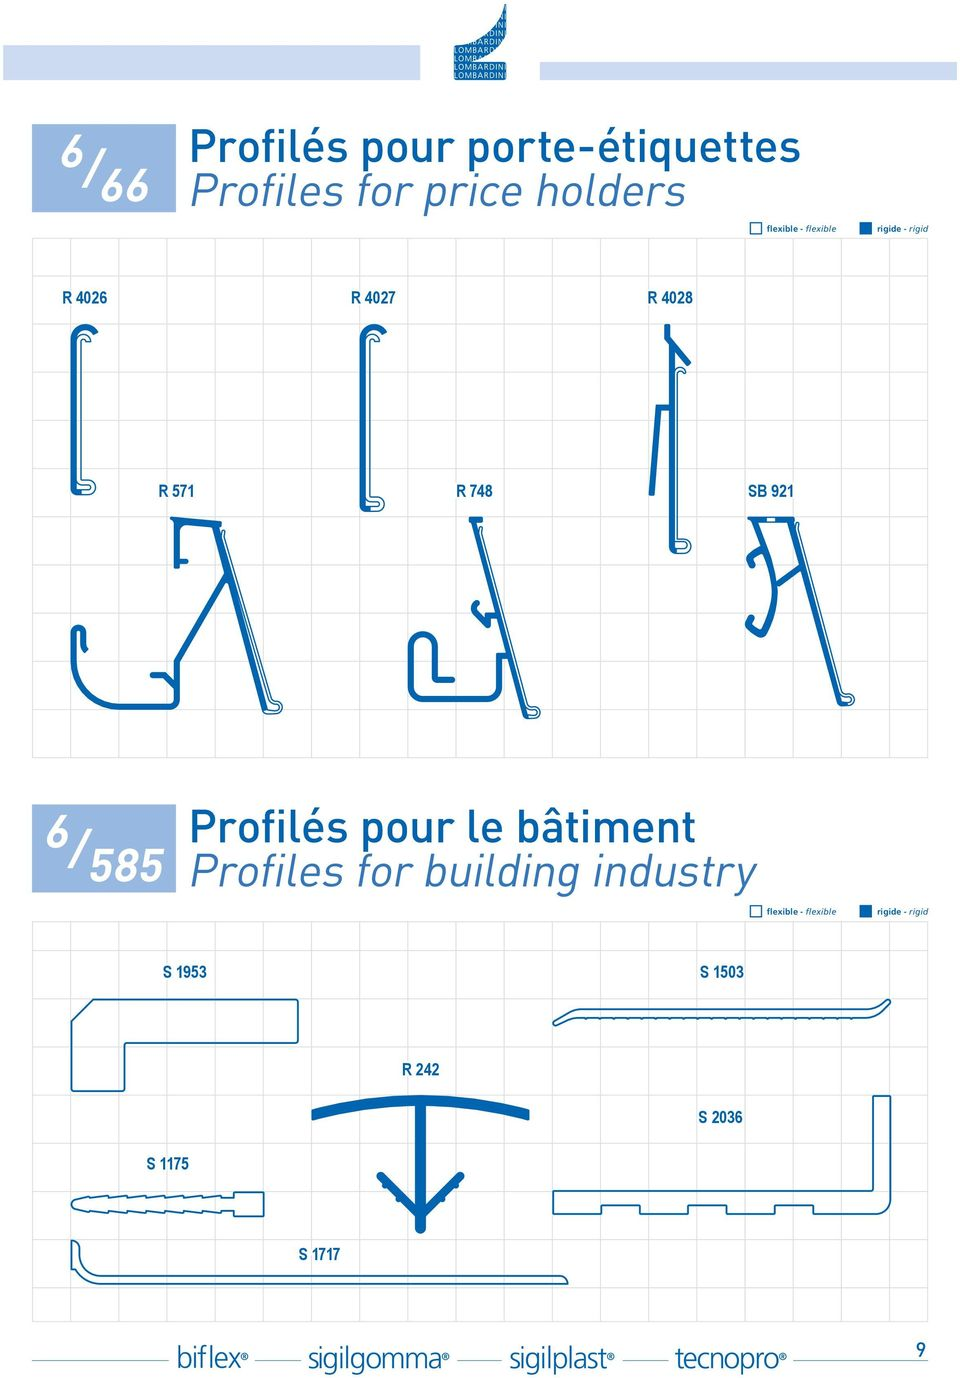 Profilés pour le bâtiment Profiles for building industry S